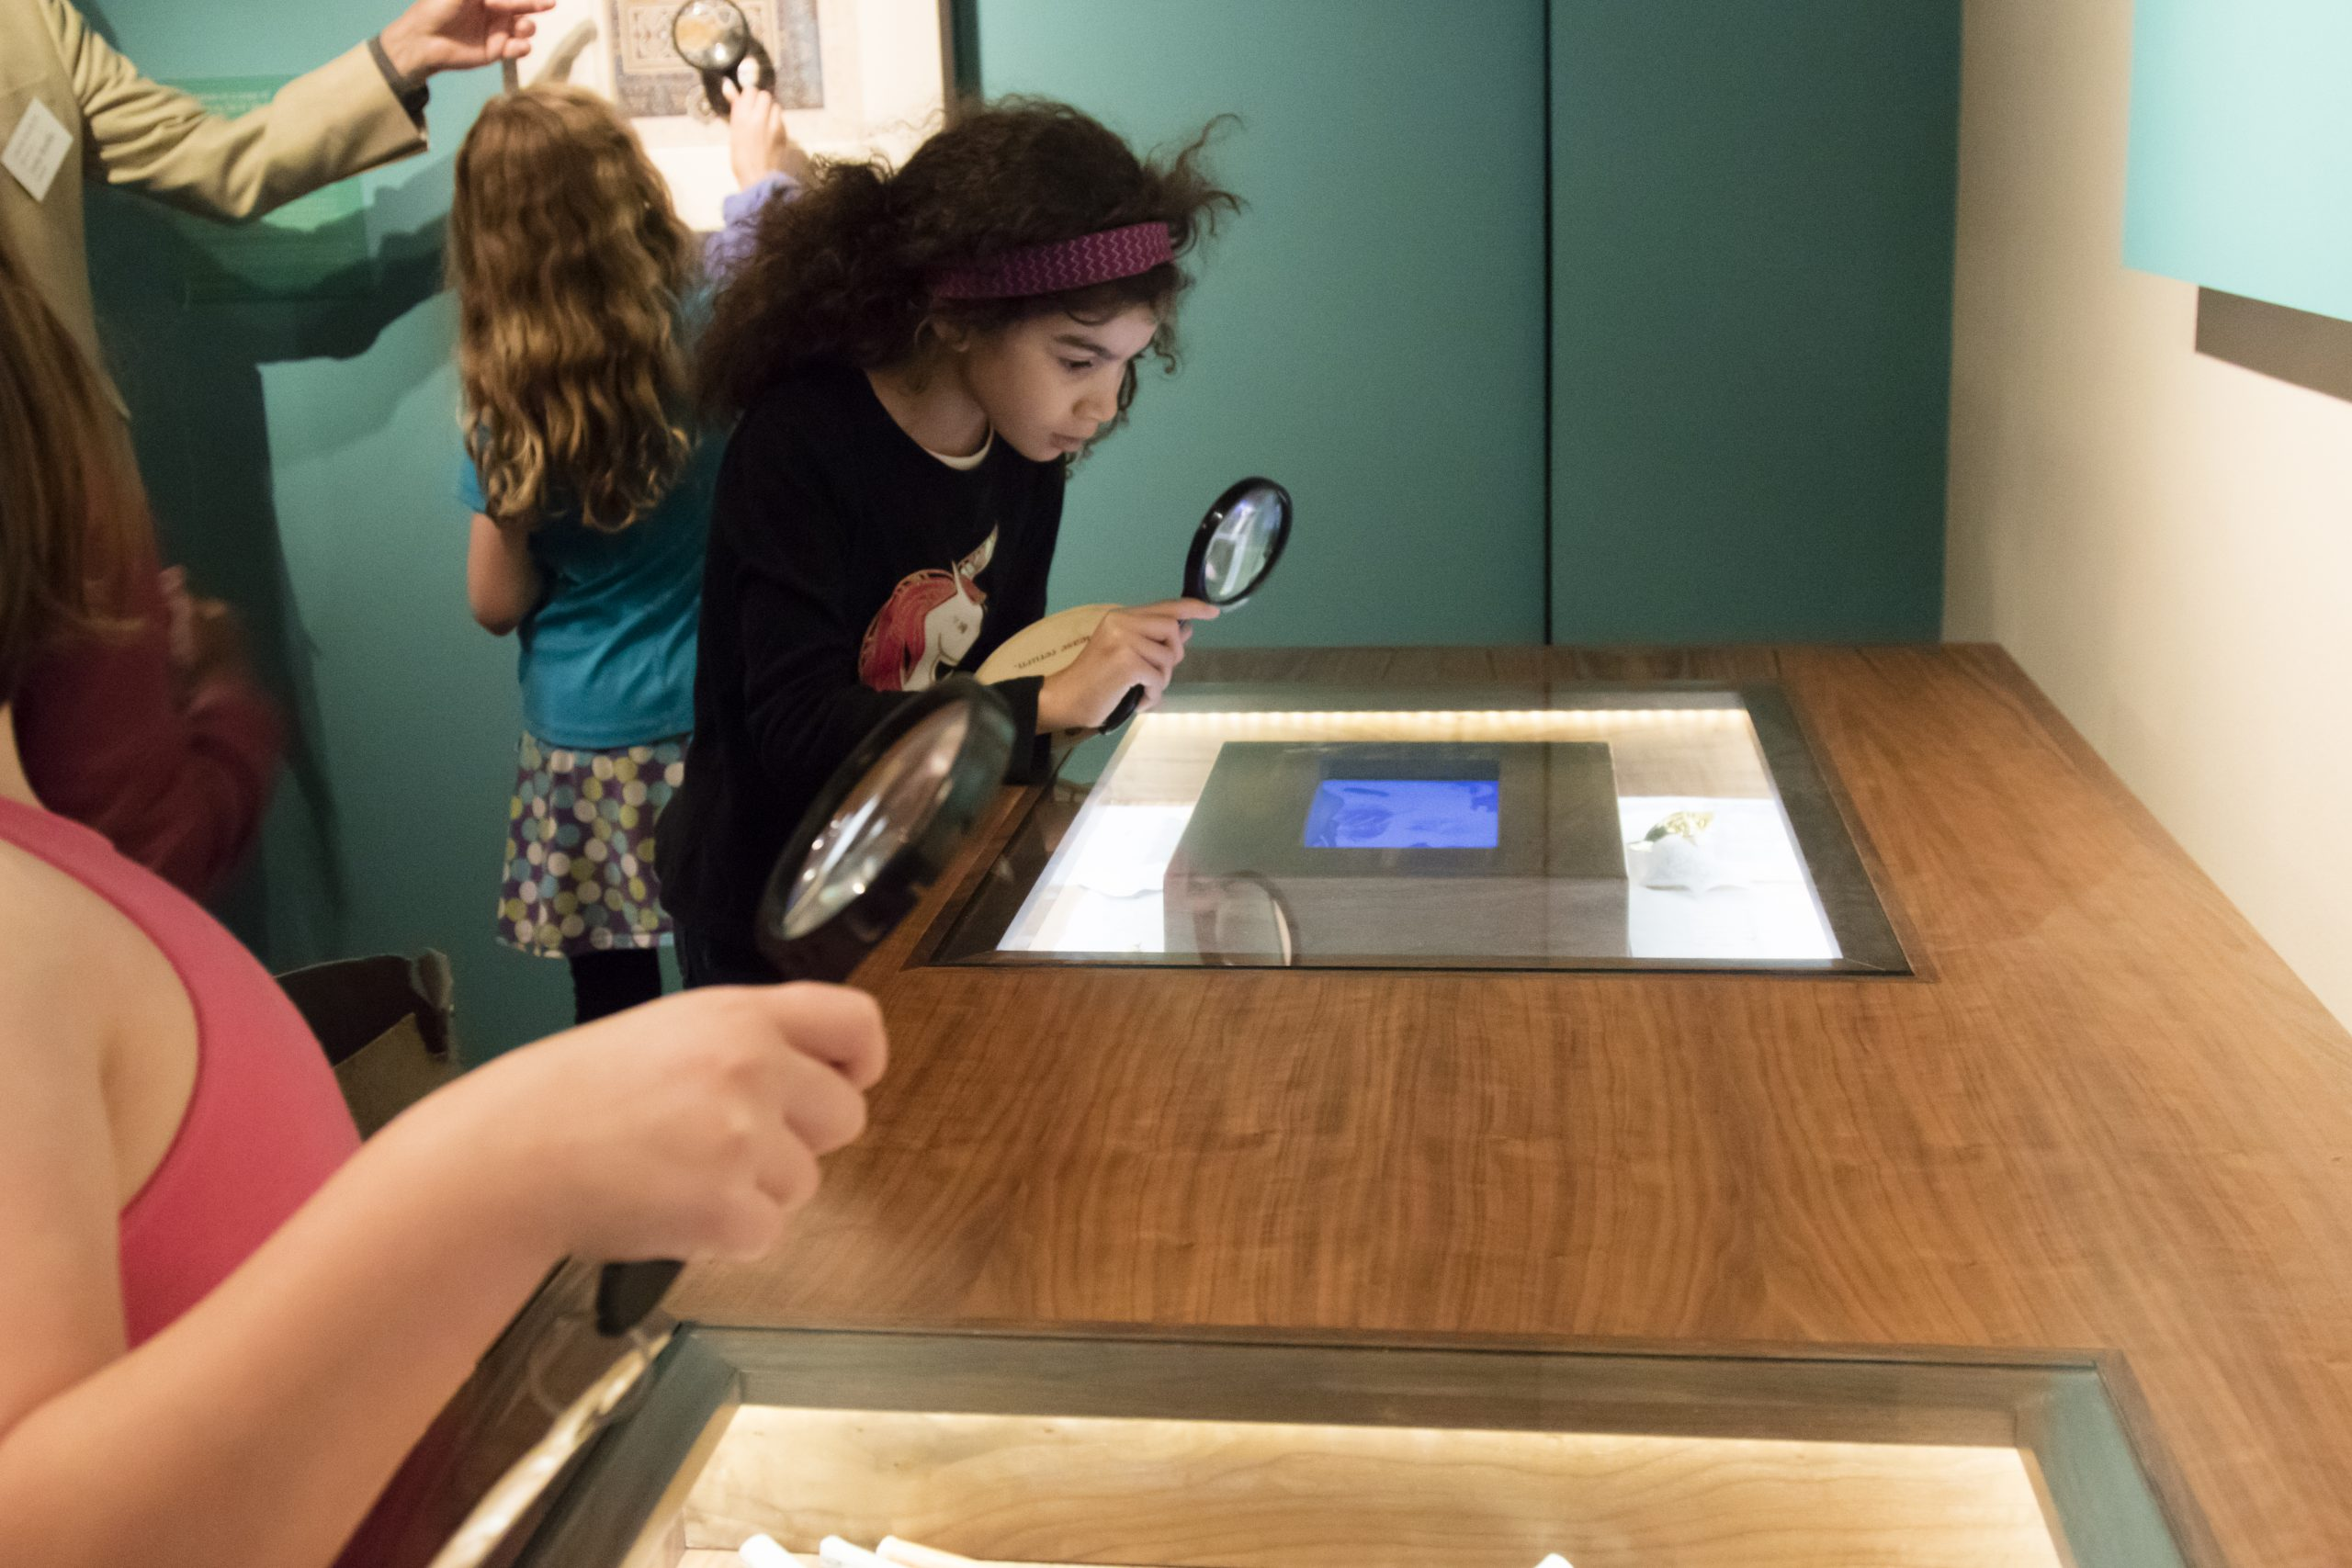 a girl using a magnifying glass over a digital table